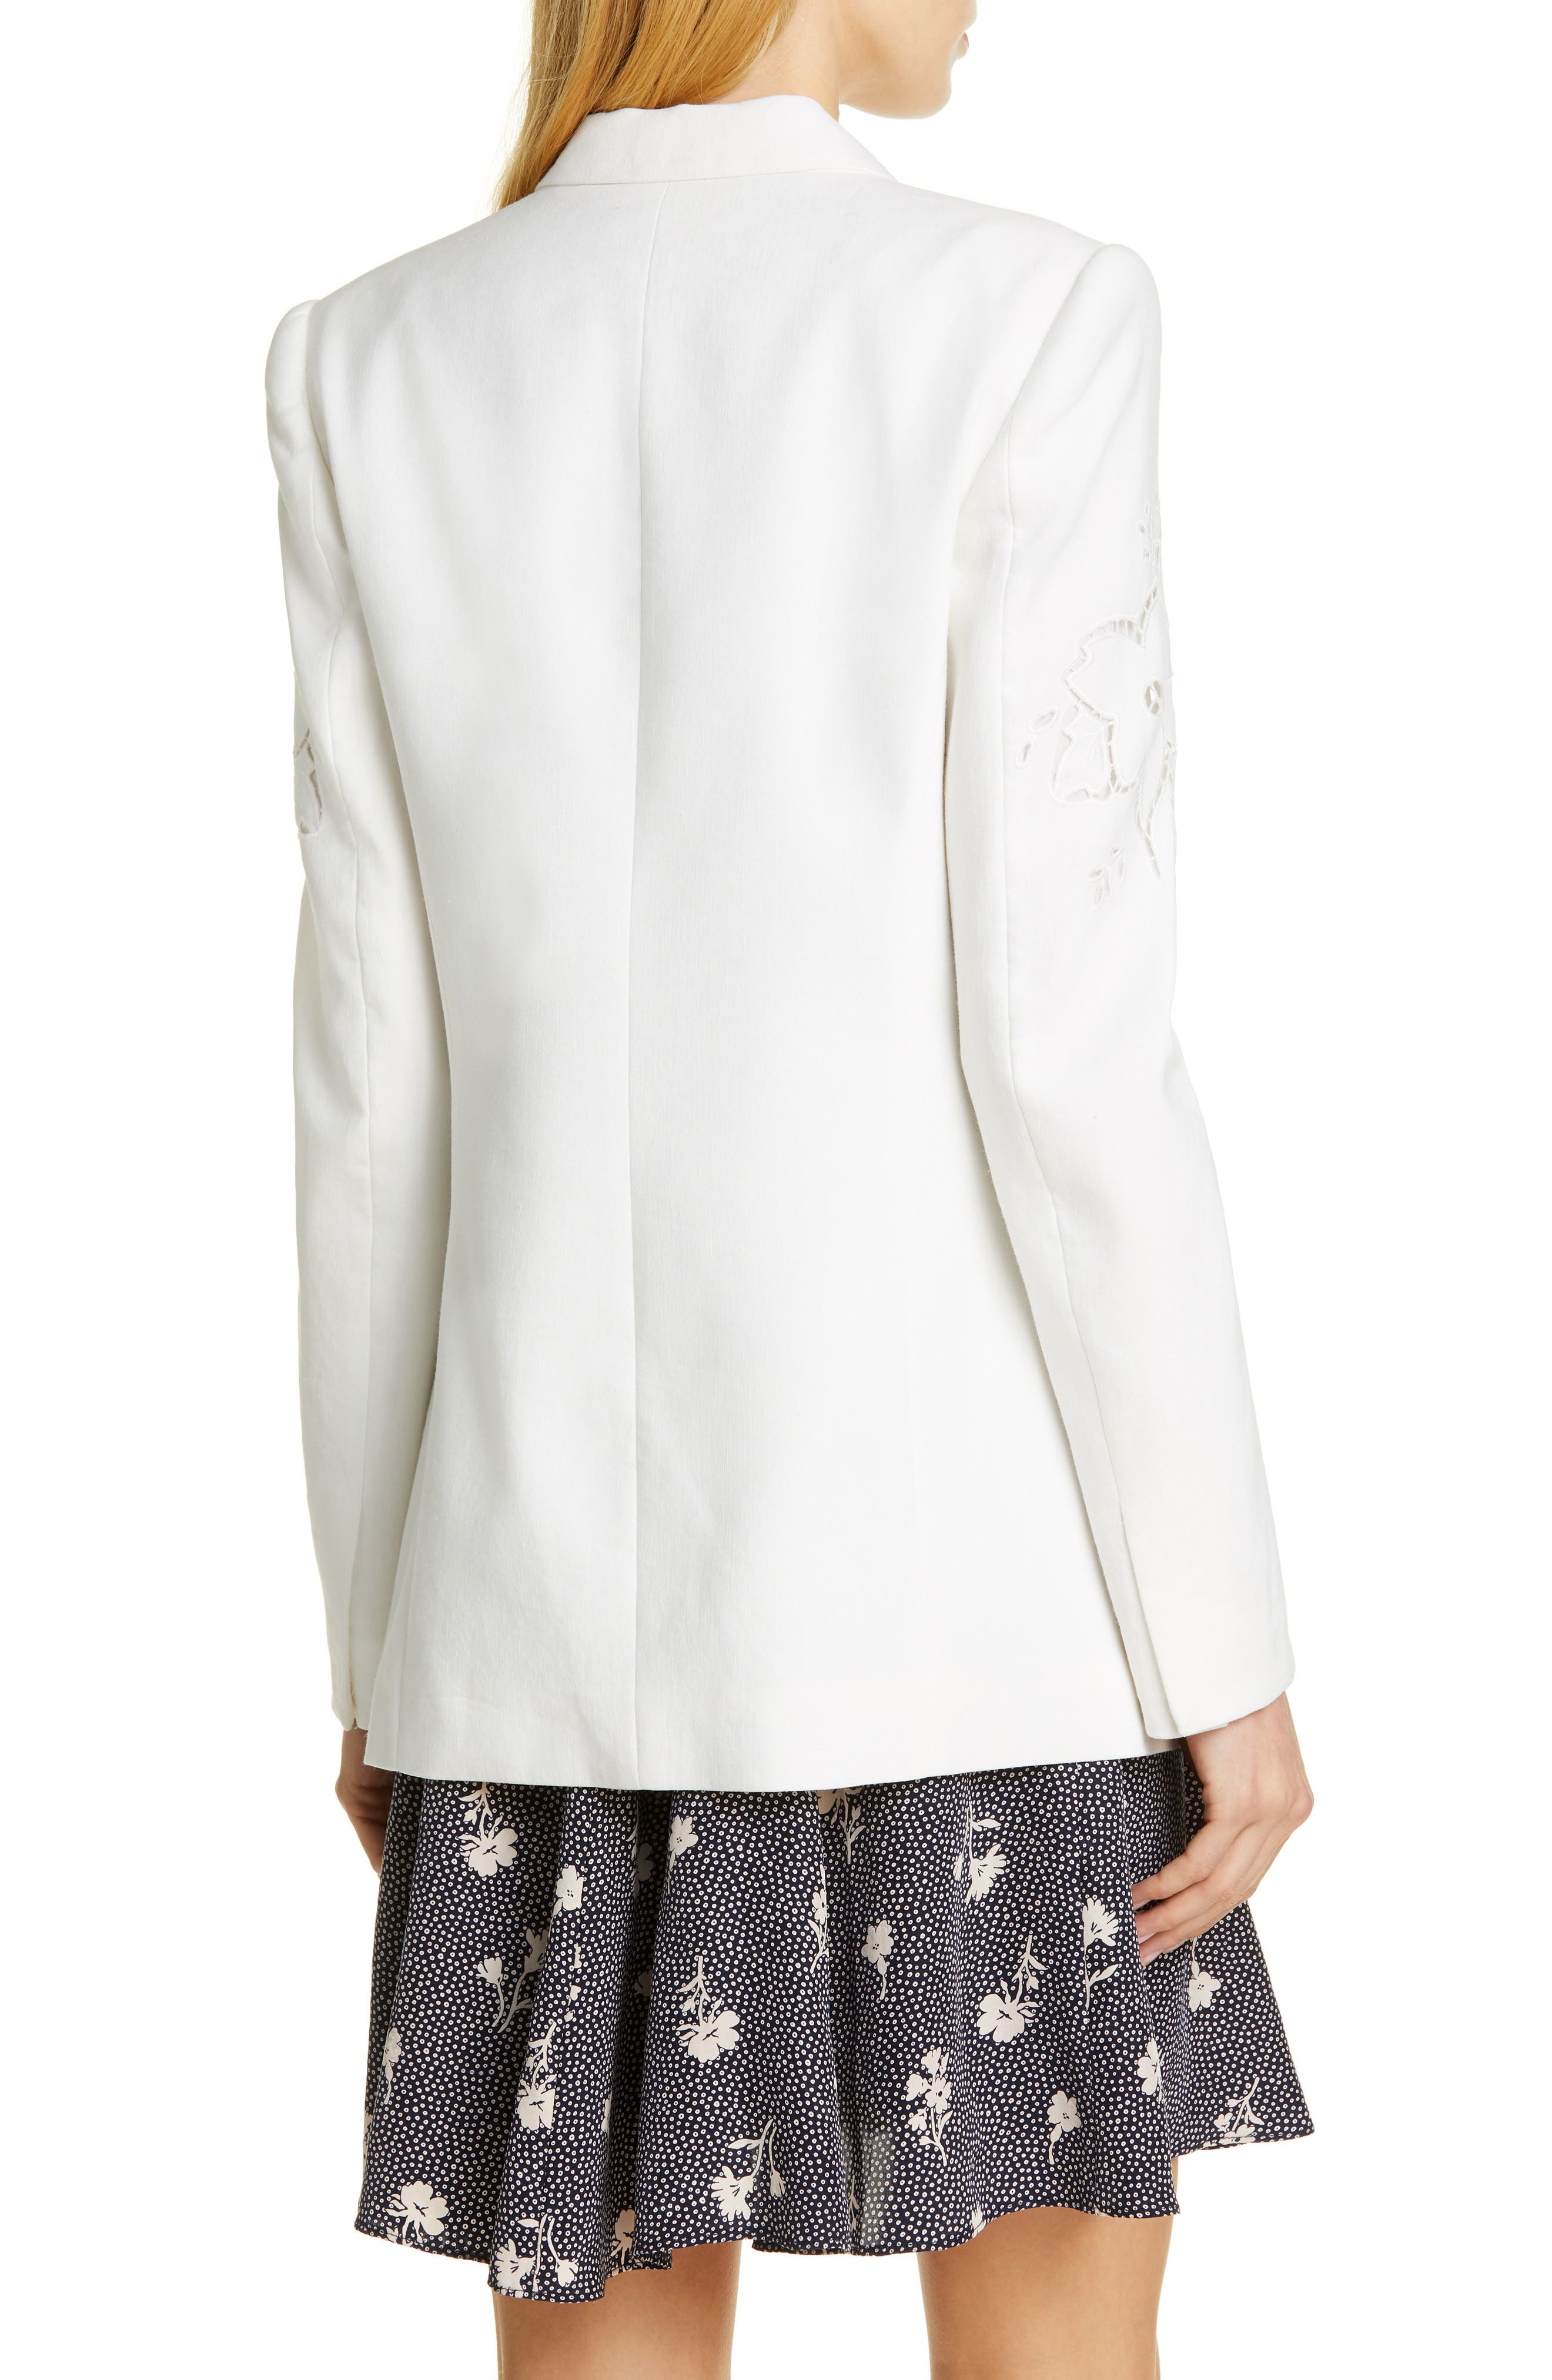 TAILORED BY REBECCA TAYLOR,                             Eyelet Embroidery Linen Blend Blazer,                             Alternate thumbnail 2, color,                             SNOW